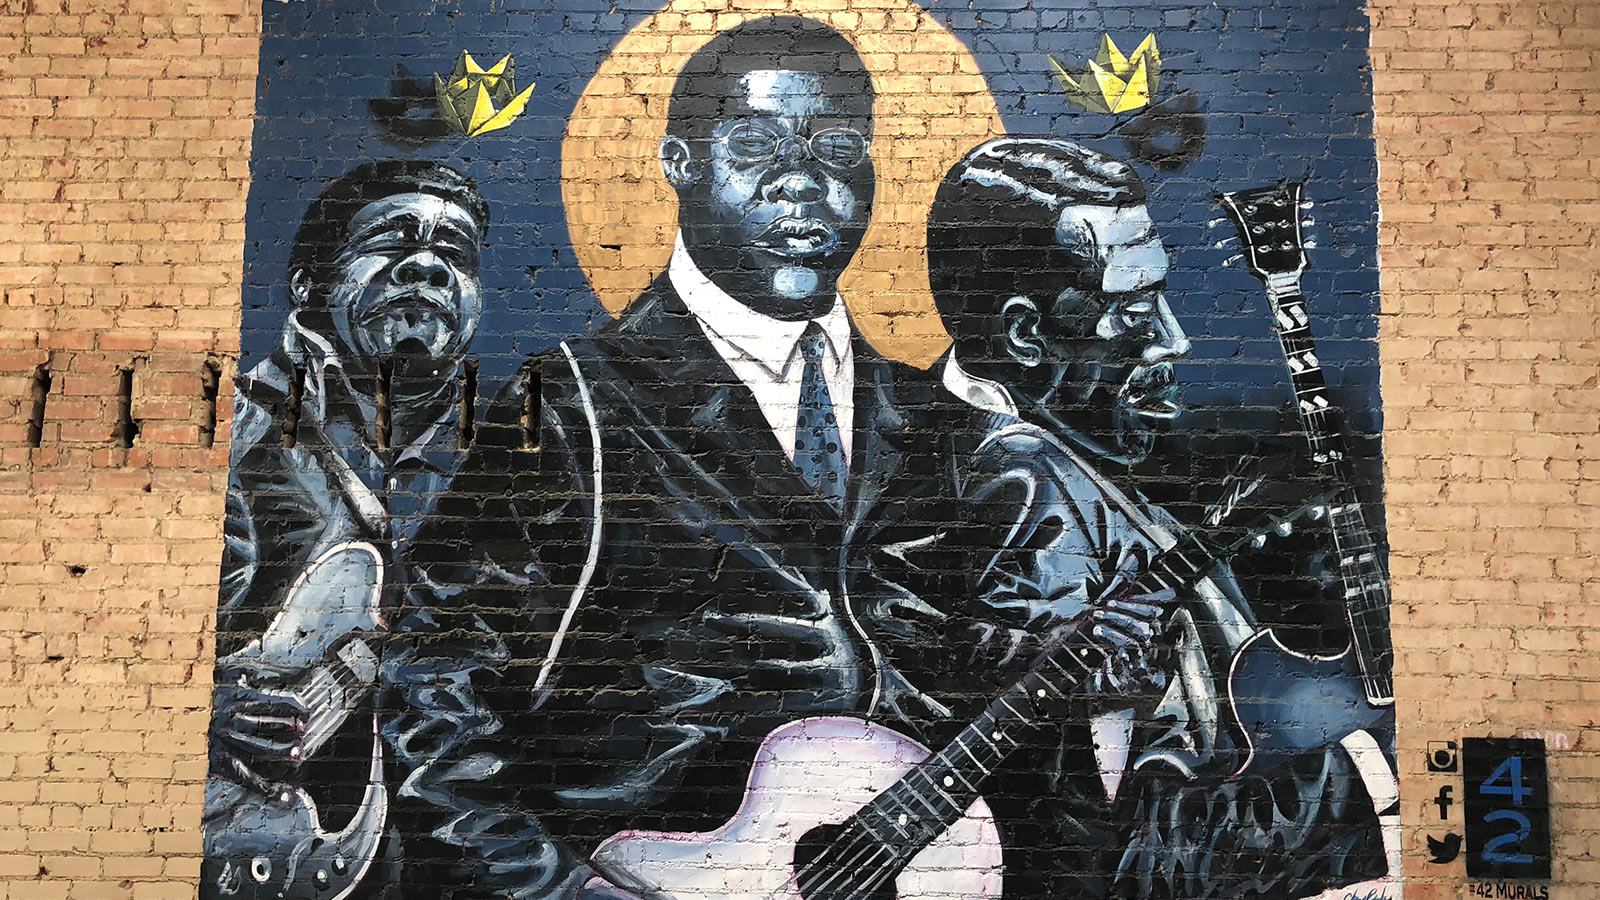 Mural painting of jazz musicians from Deep Ellum, Dallas